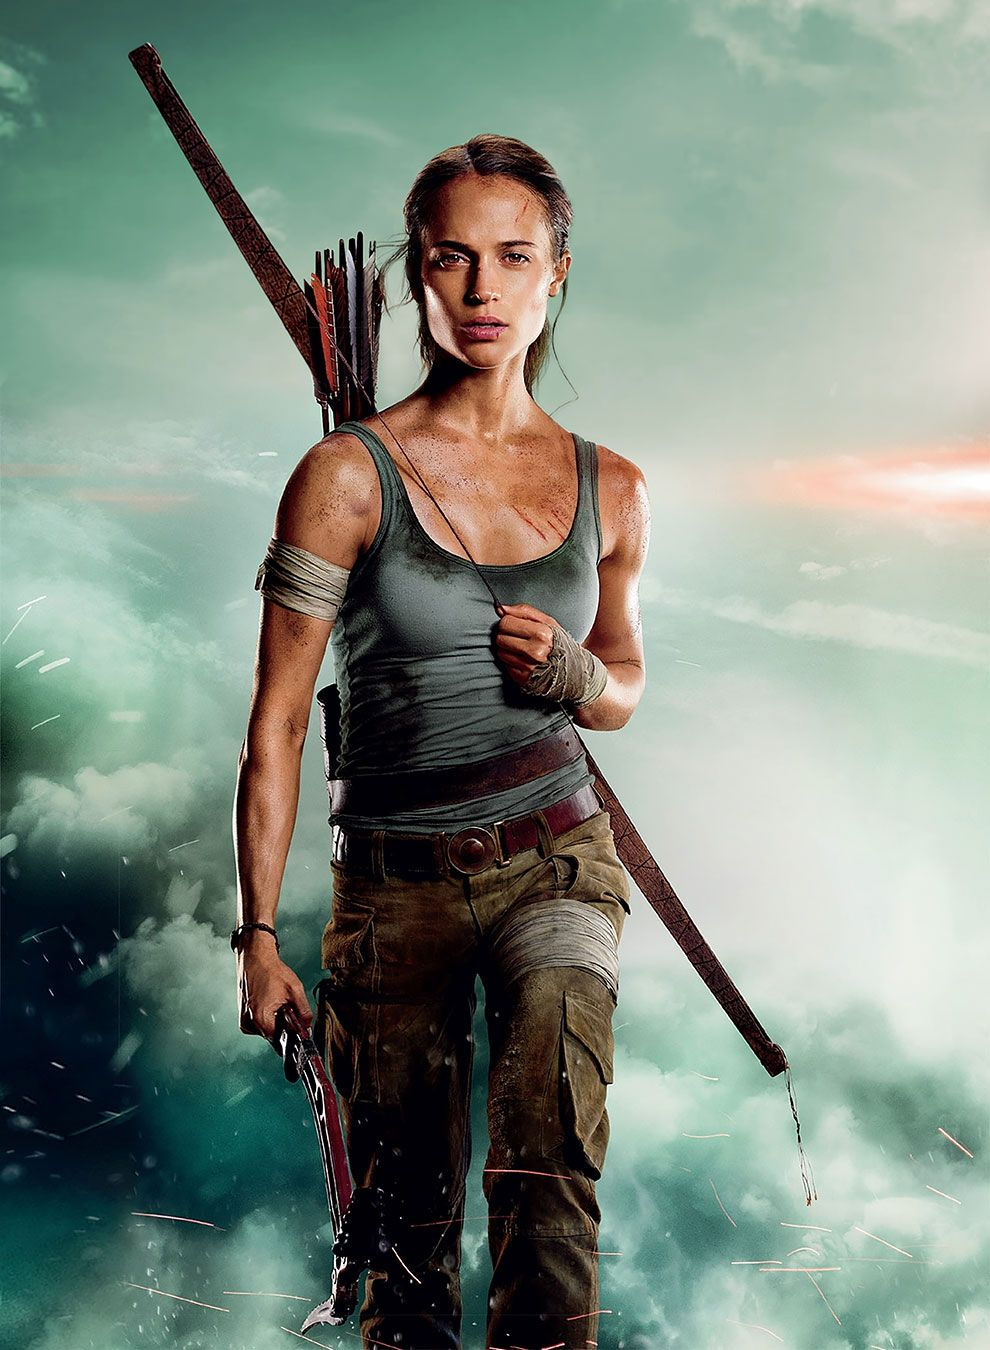 Lara Croft 2 0 Alicia Vikander Looks Ripped And Buff At These